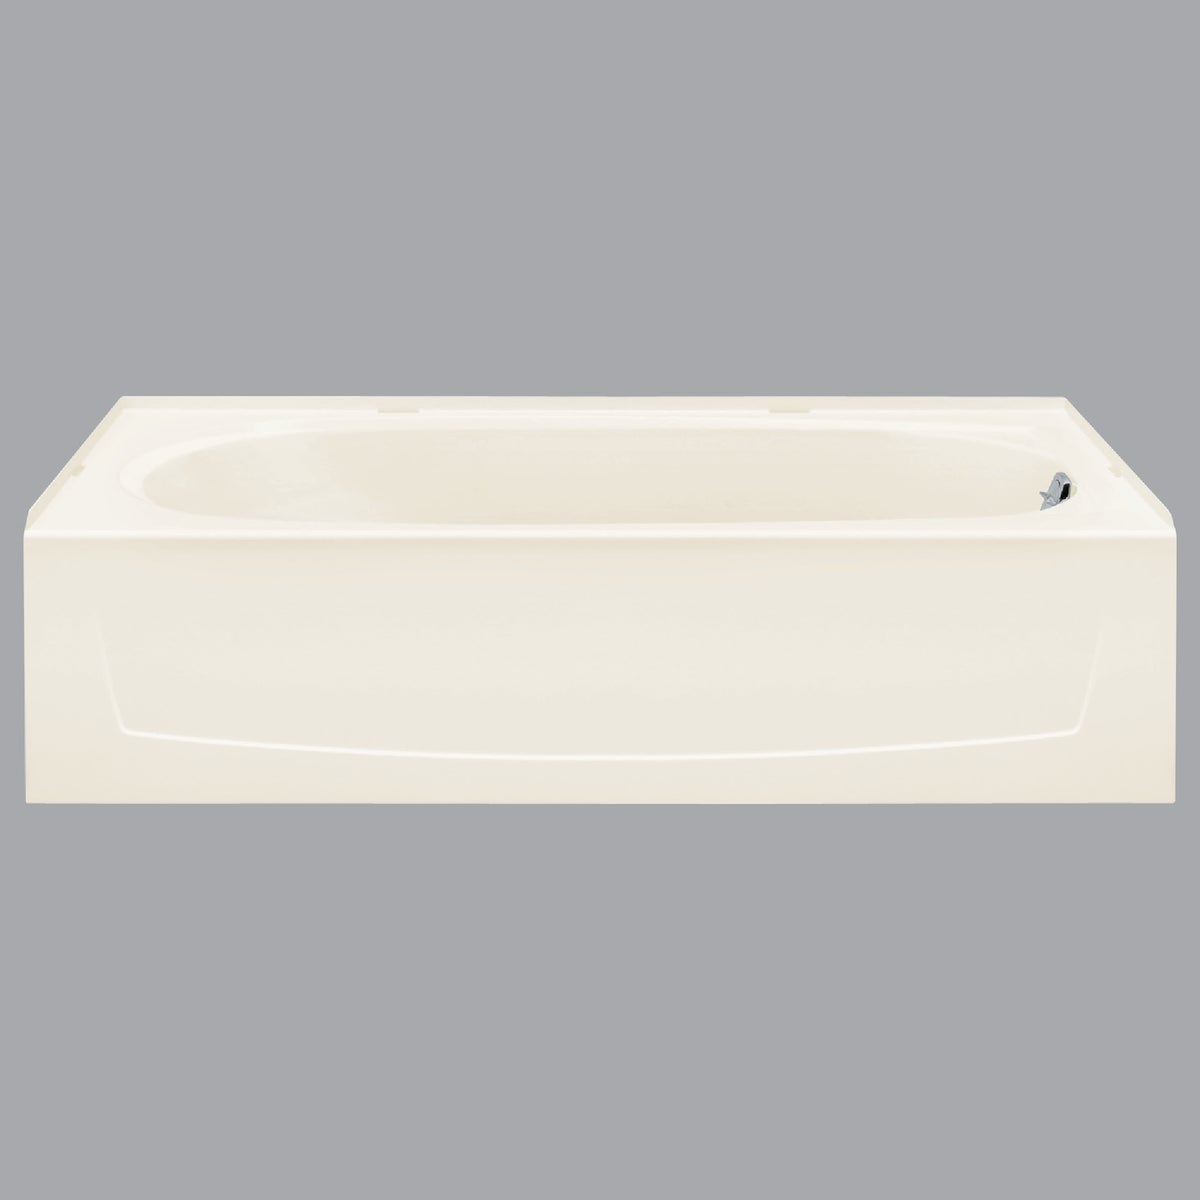 Sterling Vikrell WHT PERFORMA RH TUB 71041120-0